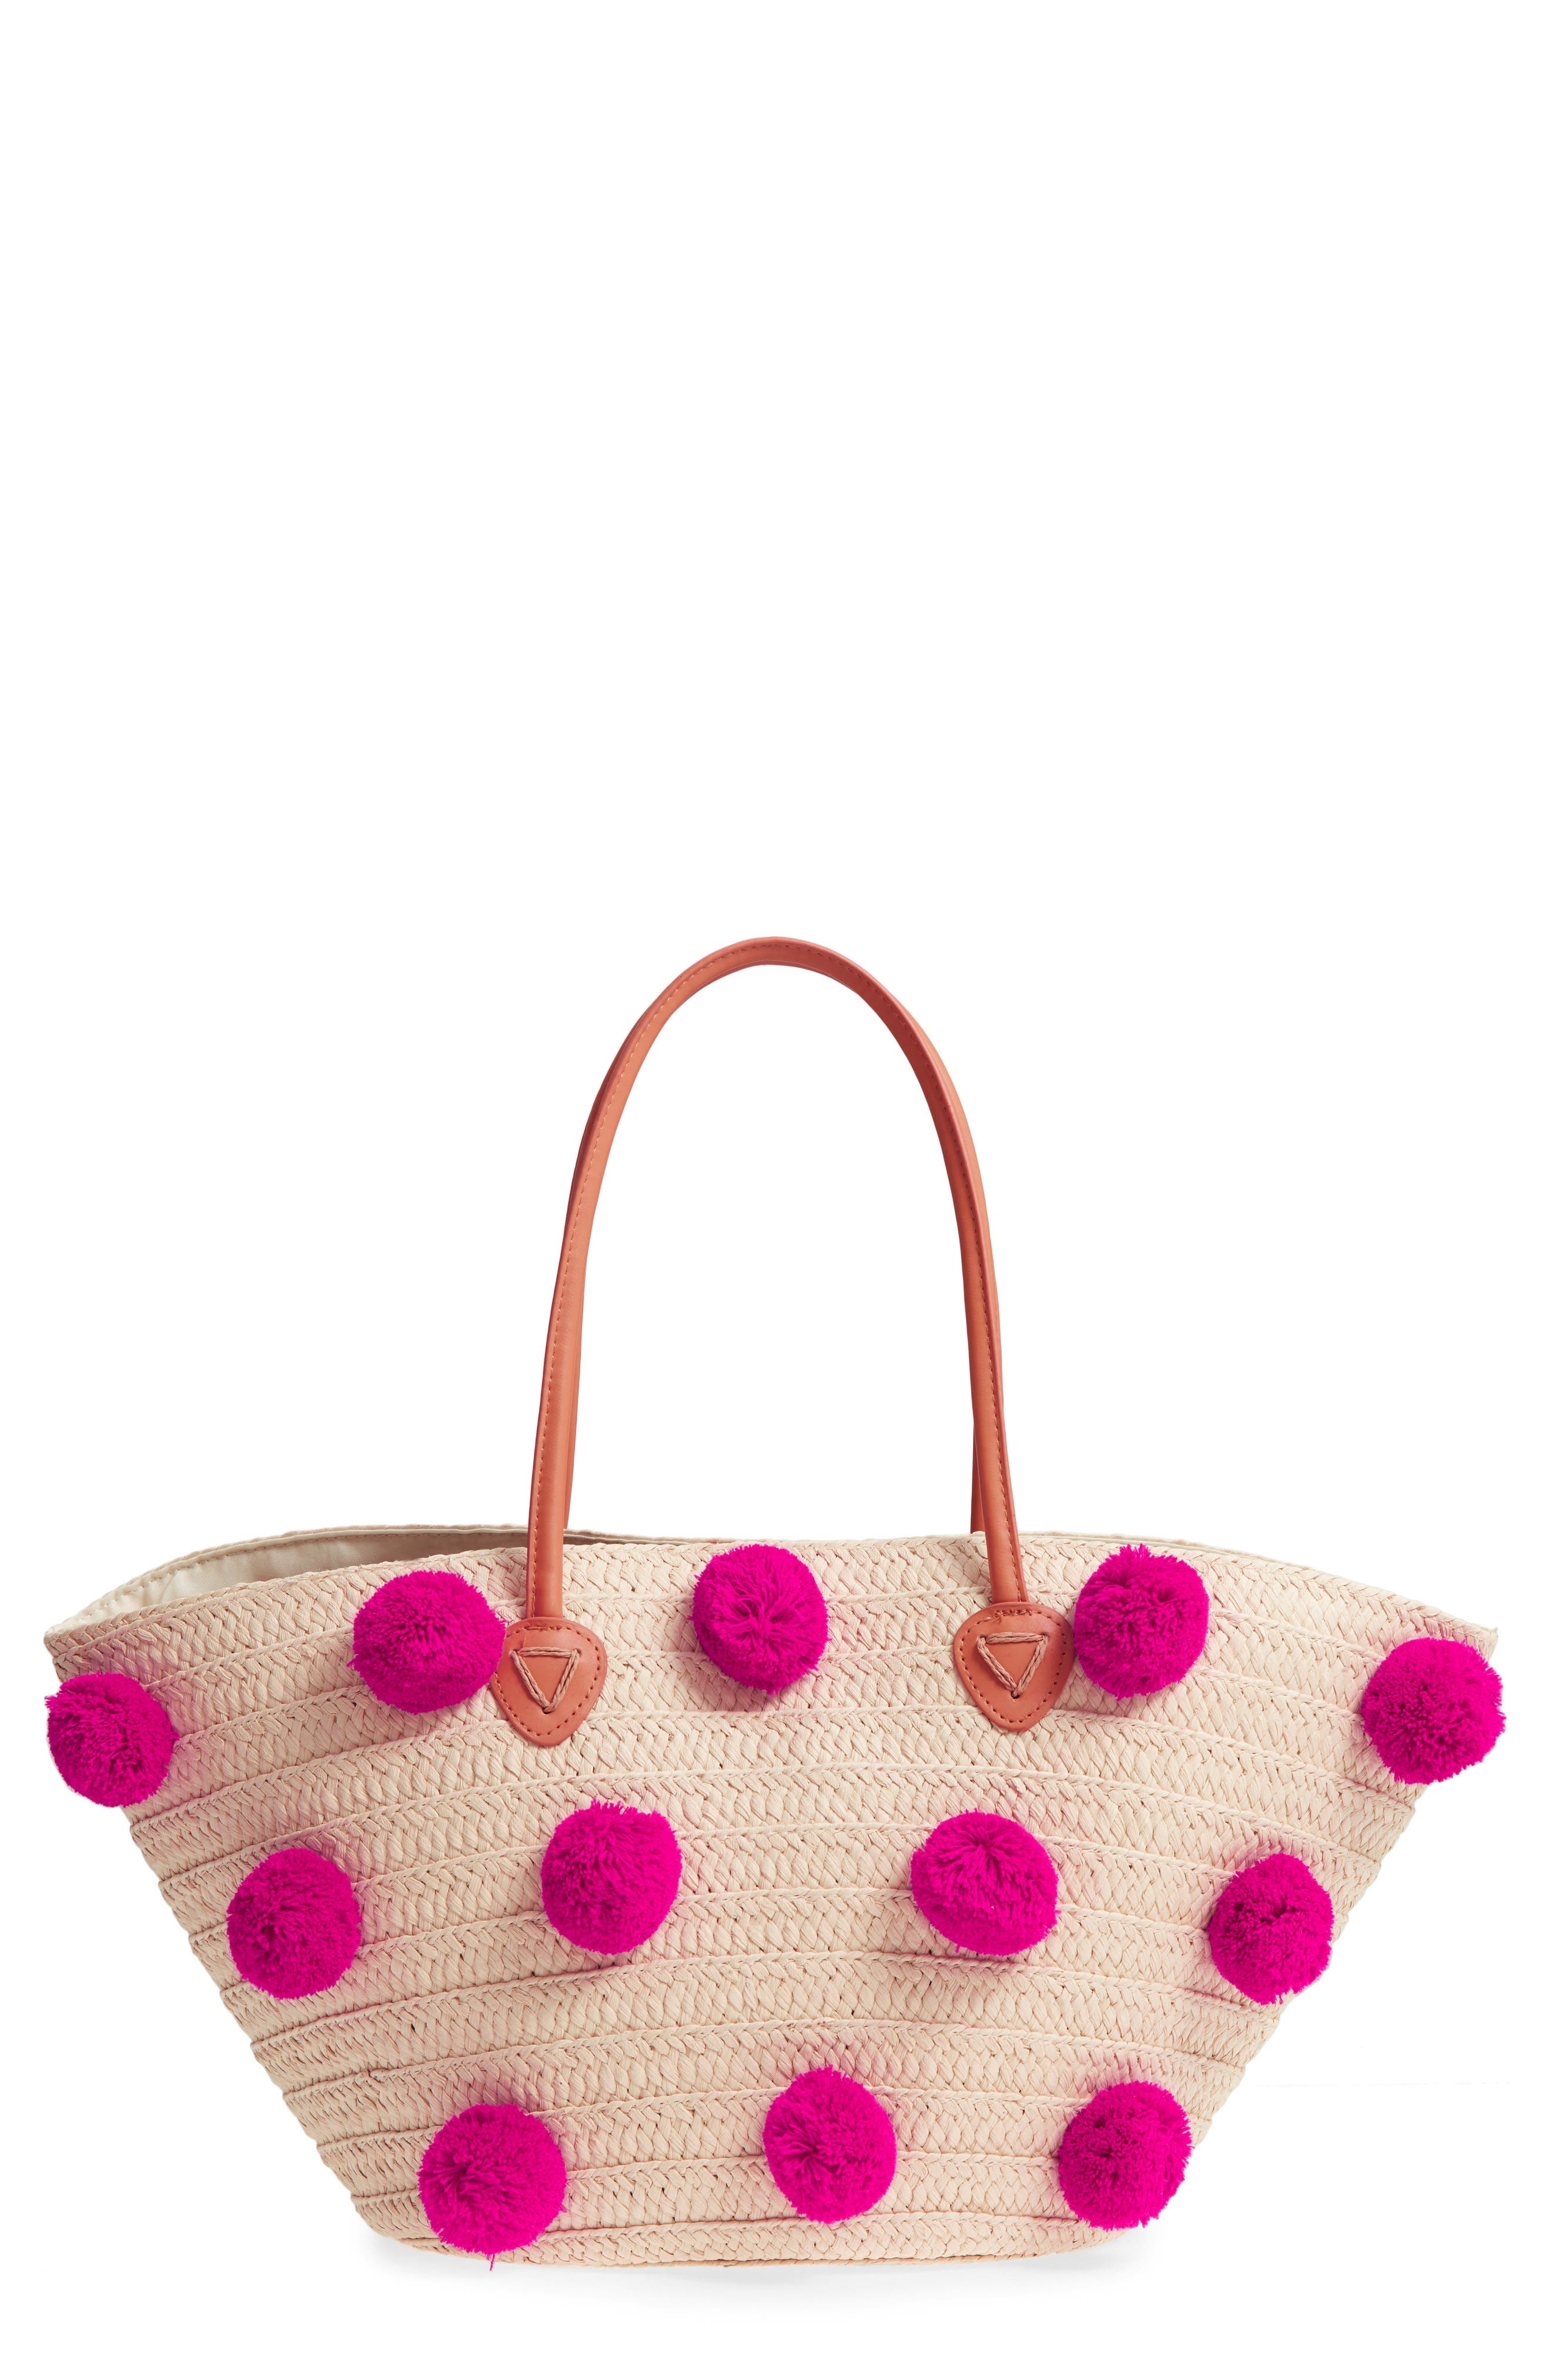 Klo Pompom Straw Tote,                             Main thumbnail 1, color,                             Pink